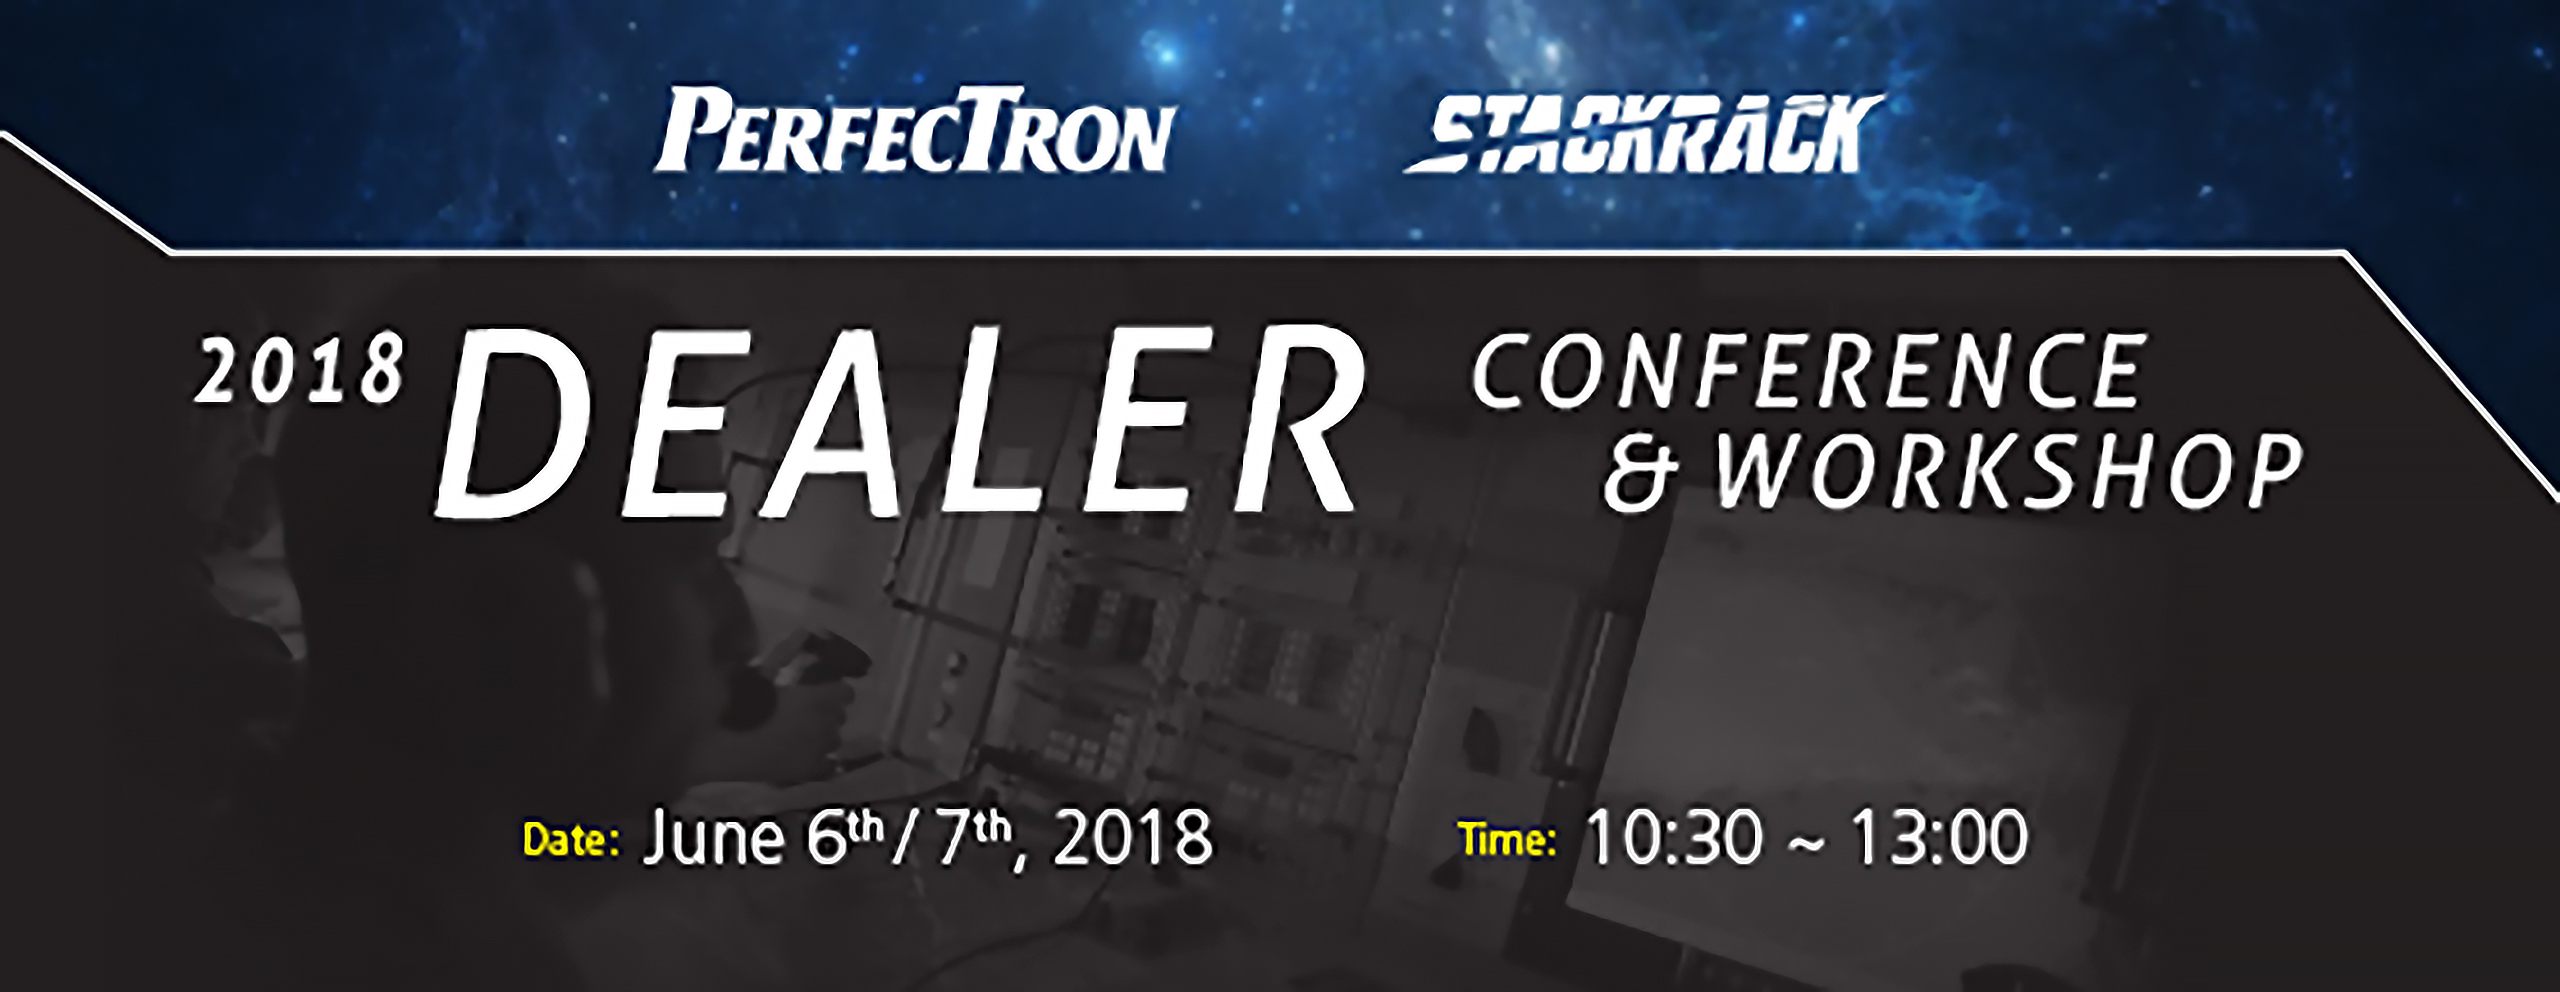 PERFECTRON & STACKRACK 2018 Dealer Conference & Workshop